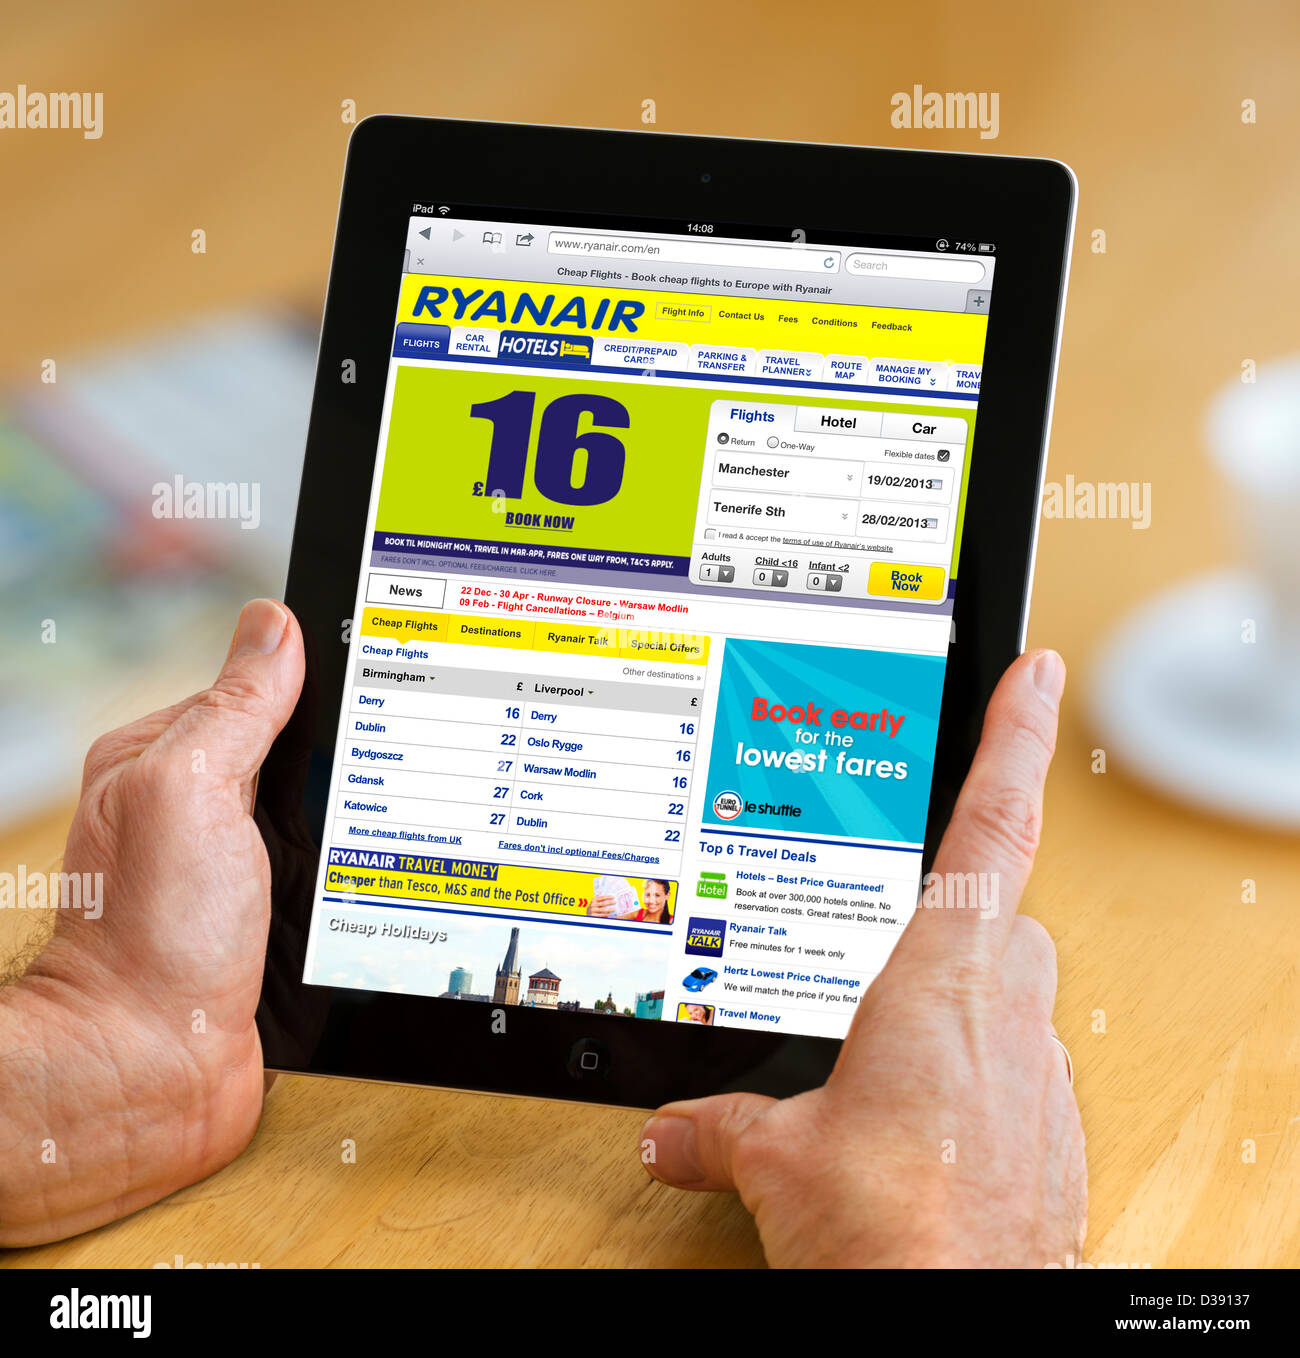 The Ryanair.com website viewed on a 4th generation Apple iPad tablet computer - Stock Image